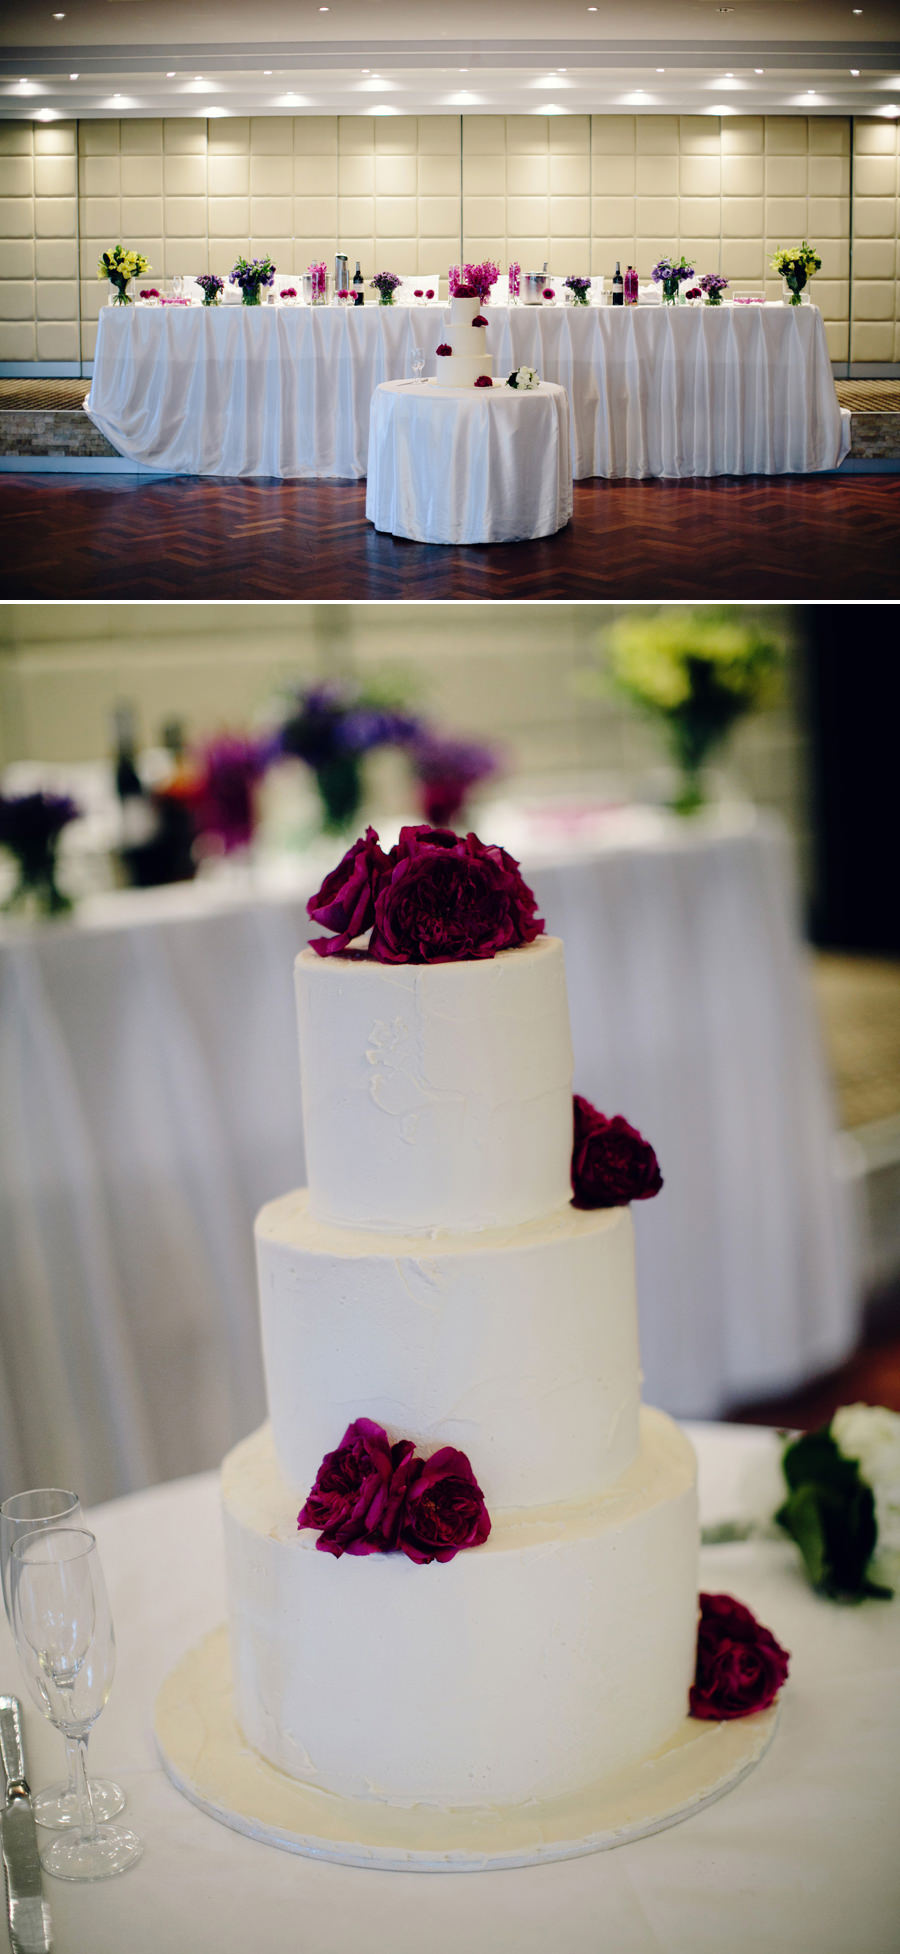 Doltone House Wedding Photographer: Bridal party table